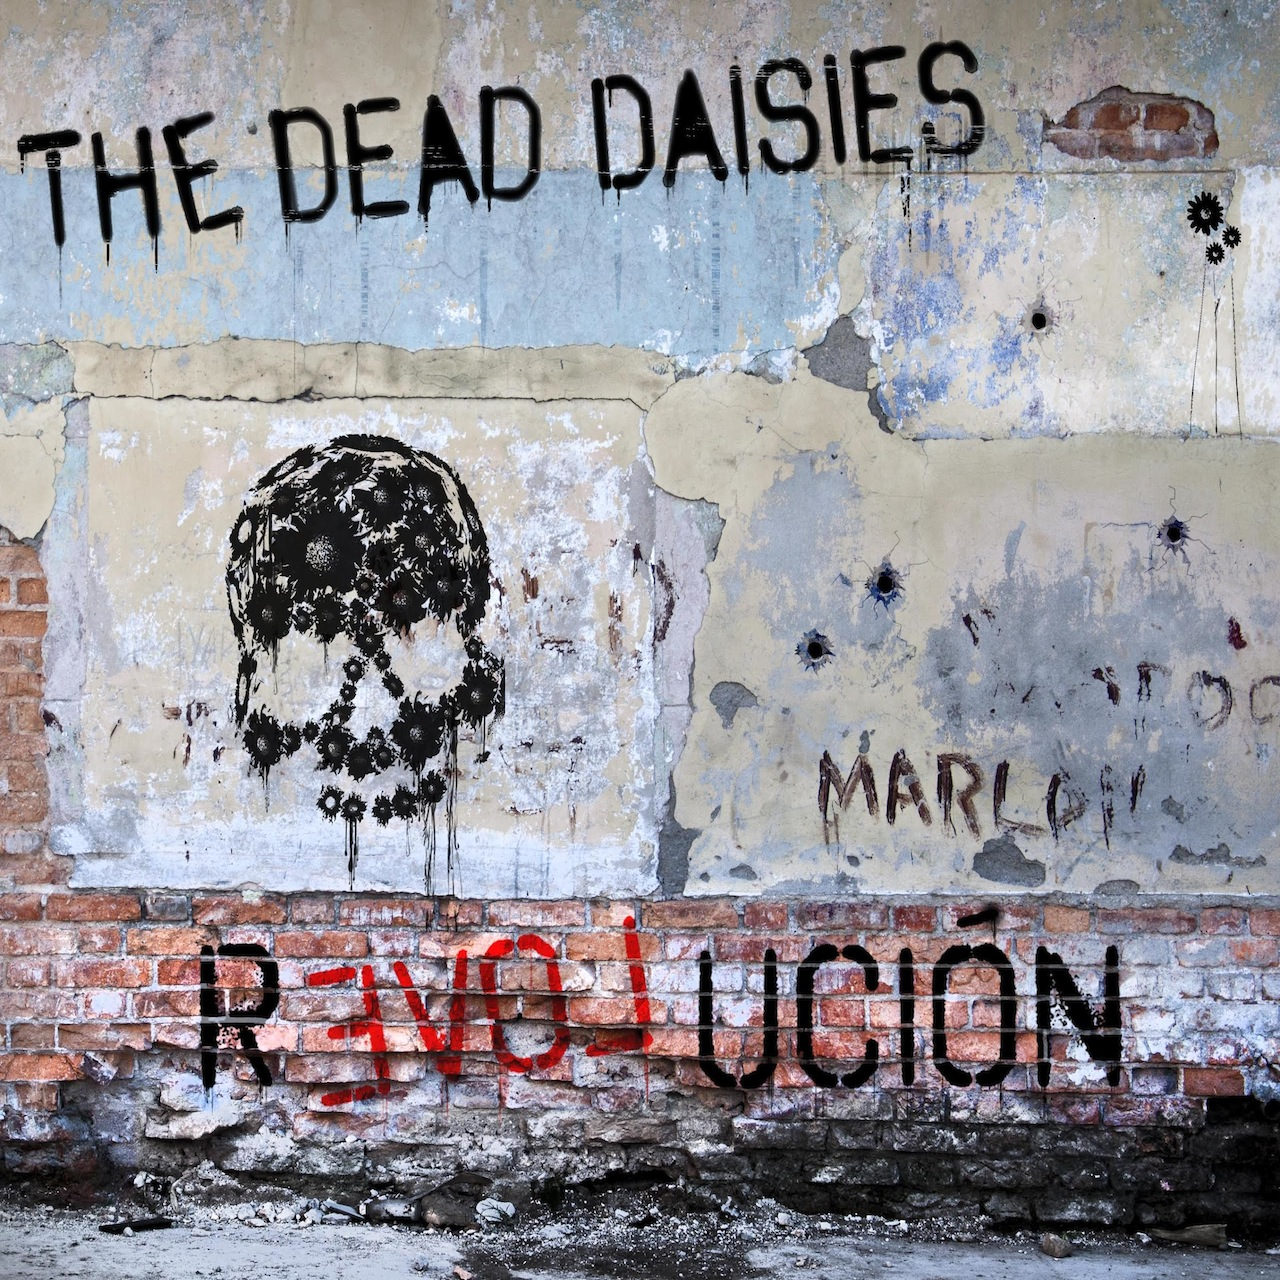 The Dead Daisies – Revolución Album Review